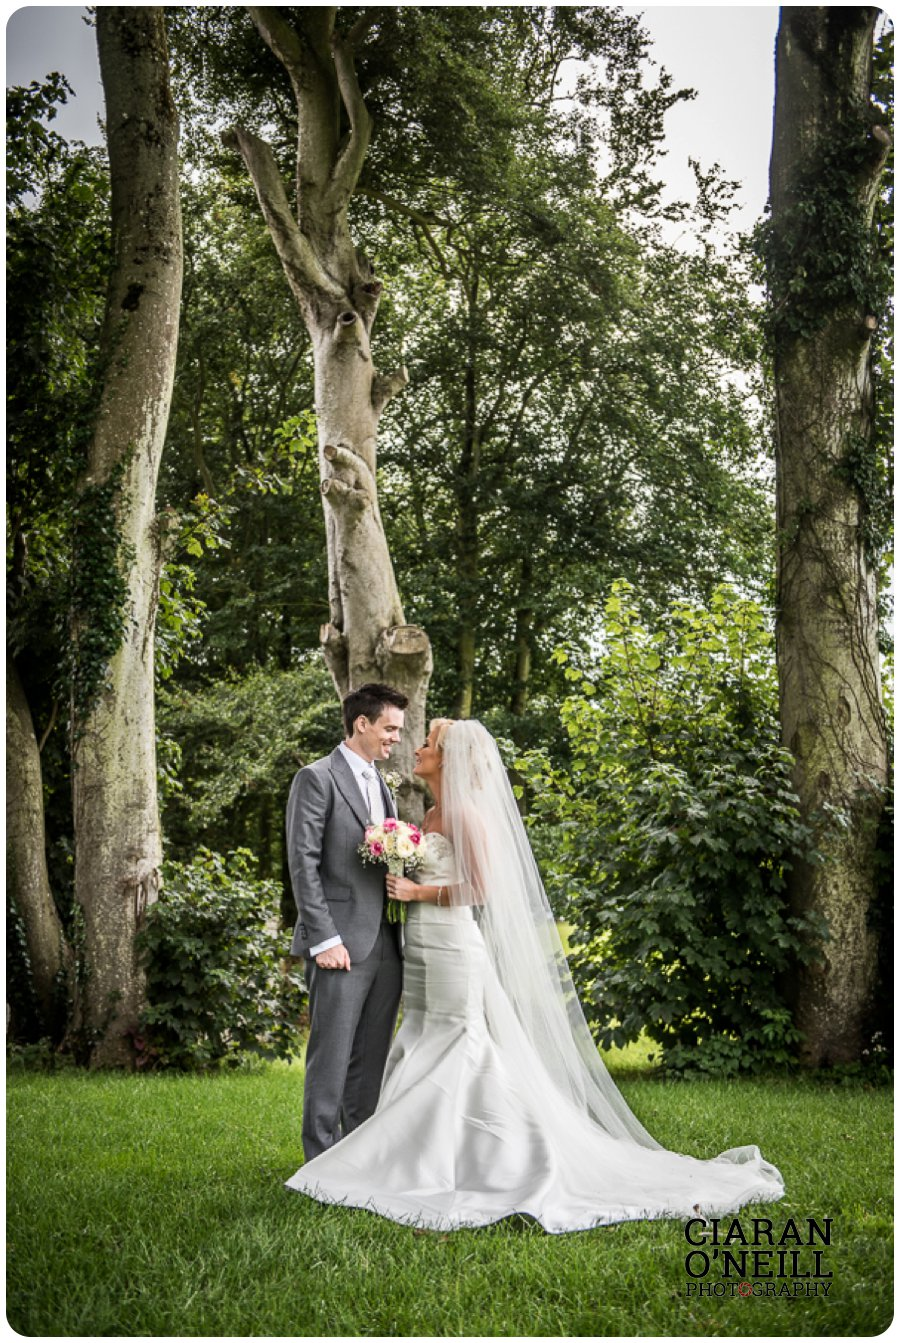 Clare & Mark's wedding at Darver Castle by Ciaran O'Neill Photography 10